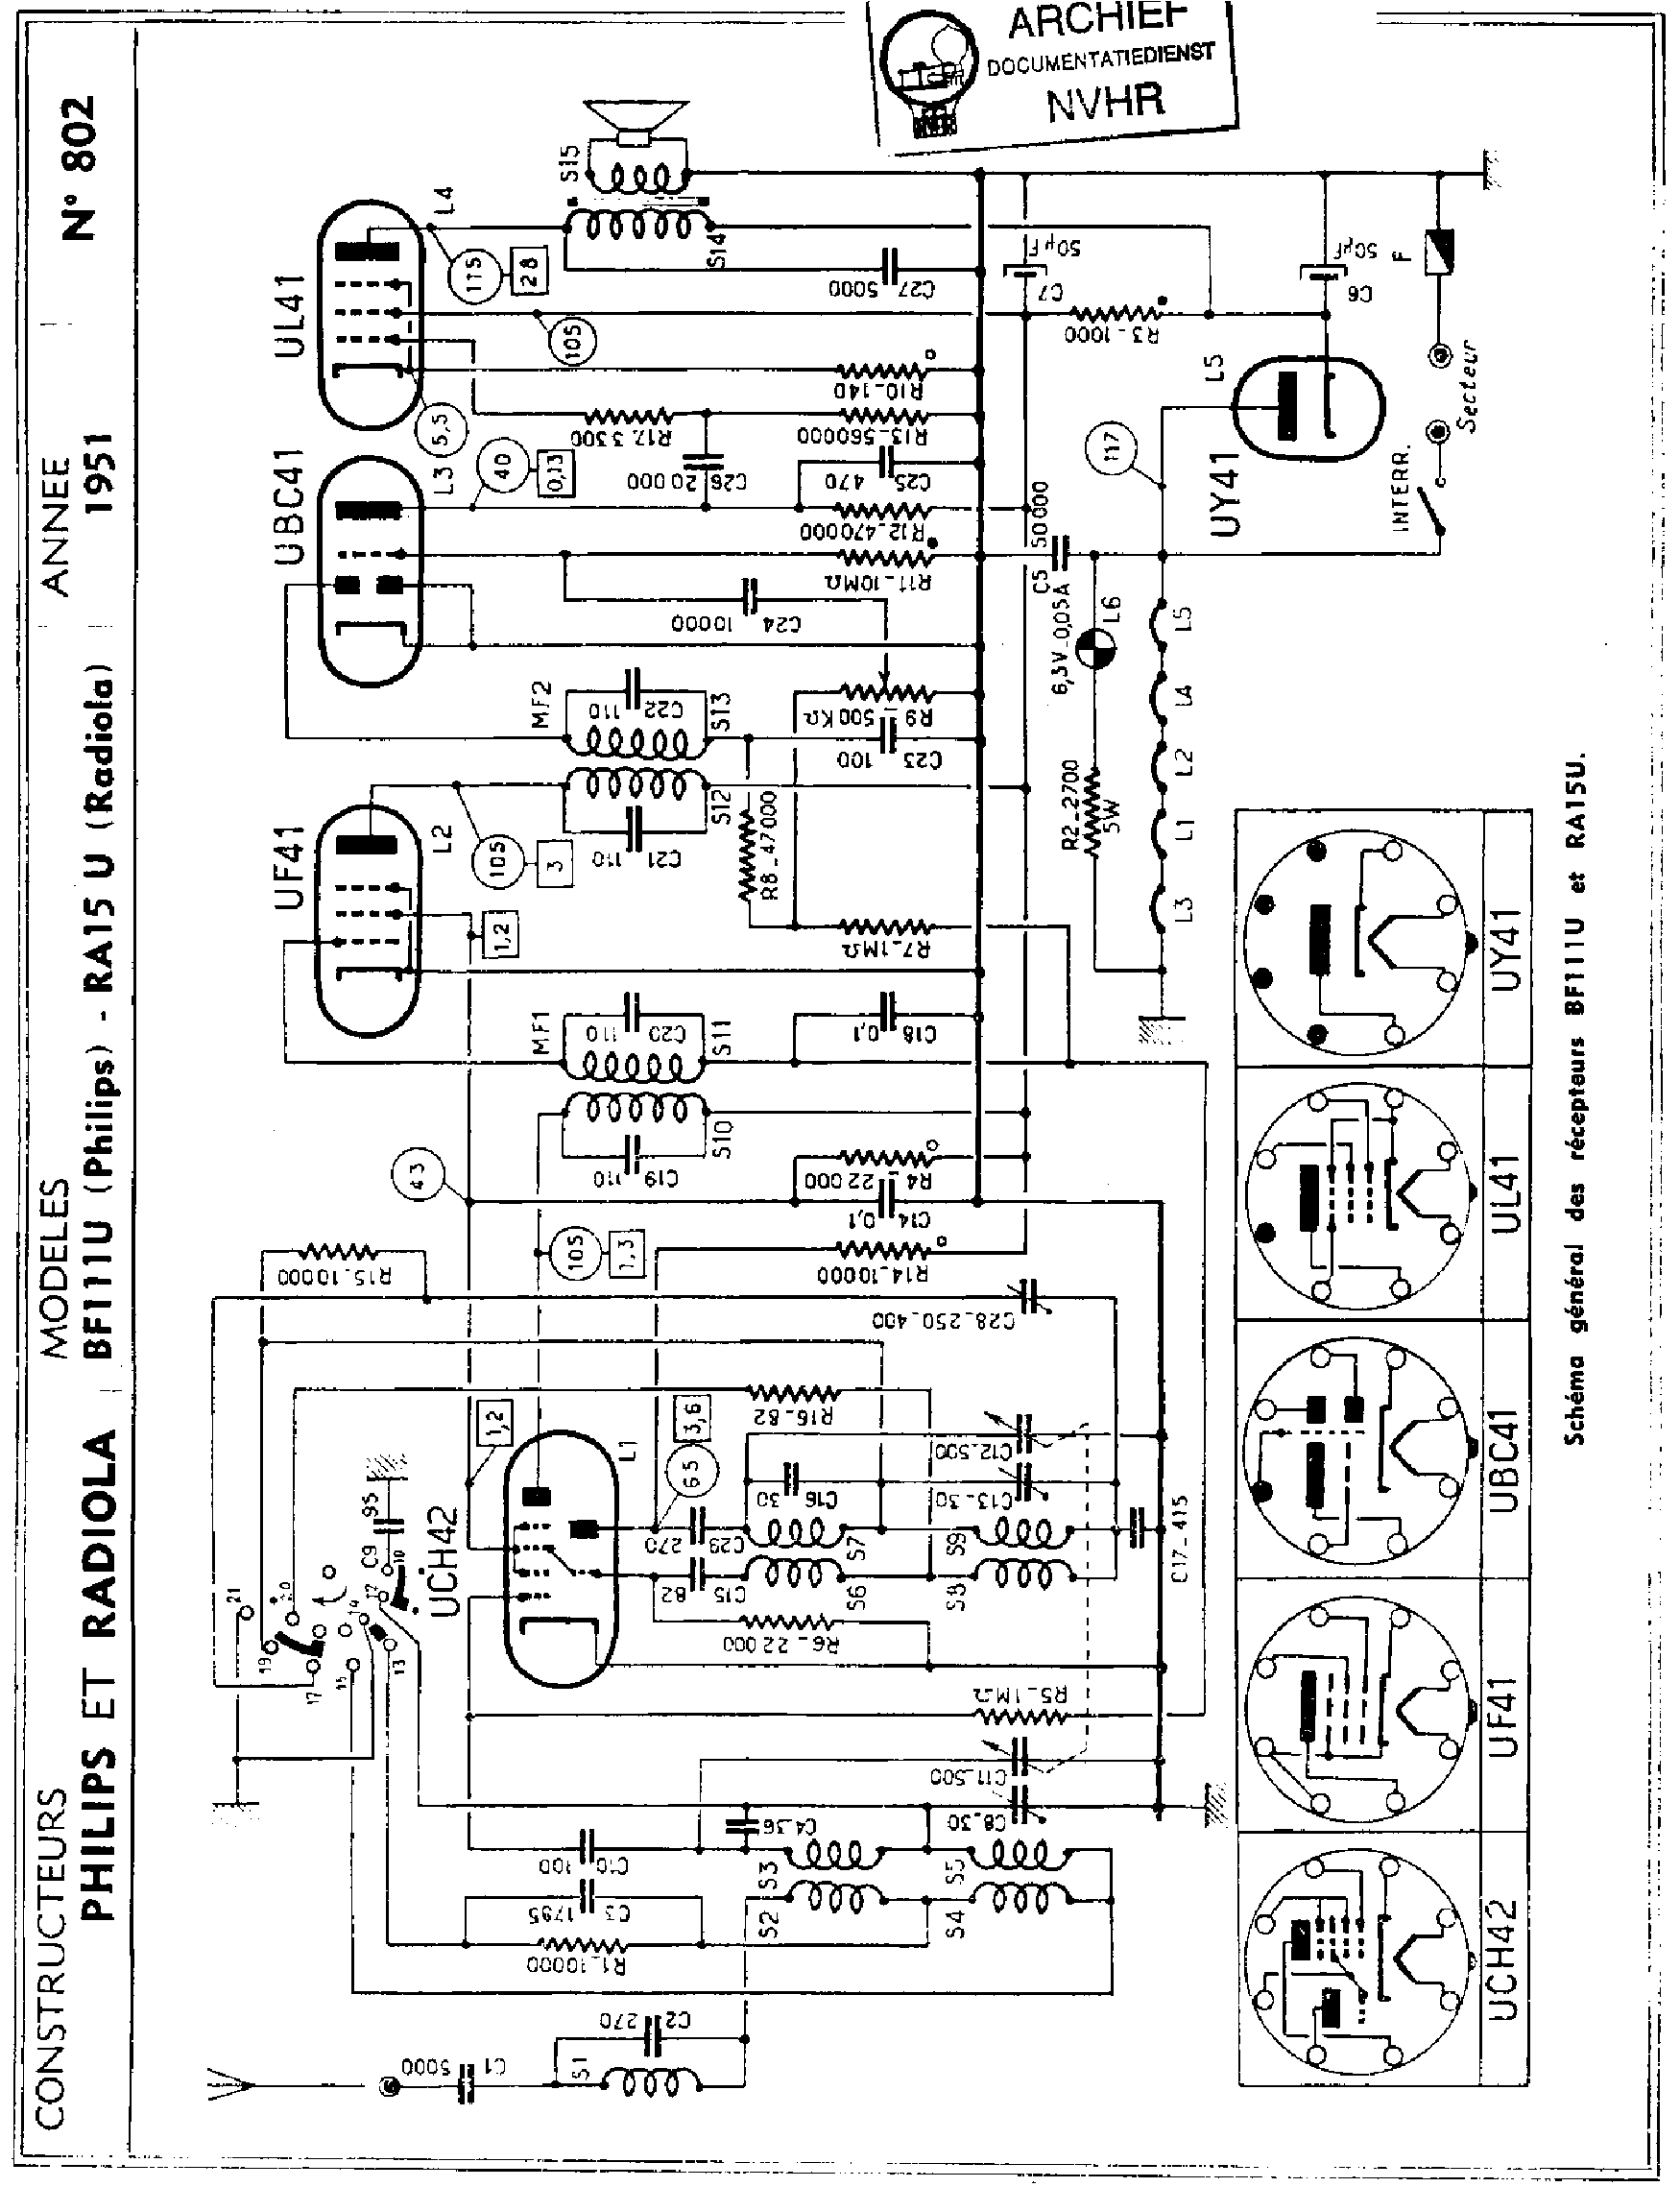 PHILIPS CD640 Service Manual free download, schematics